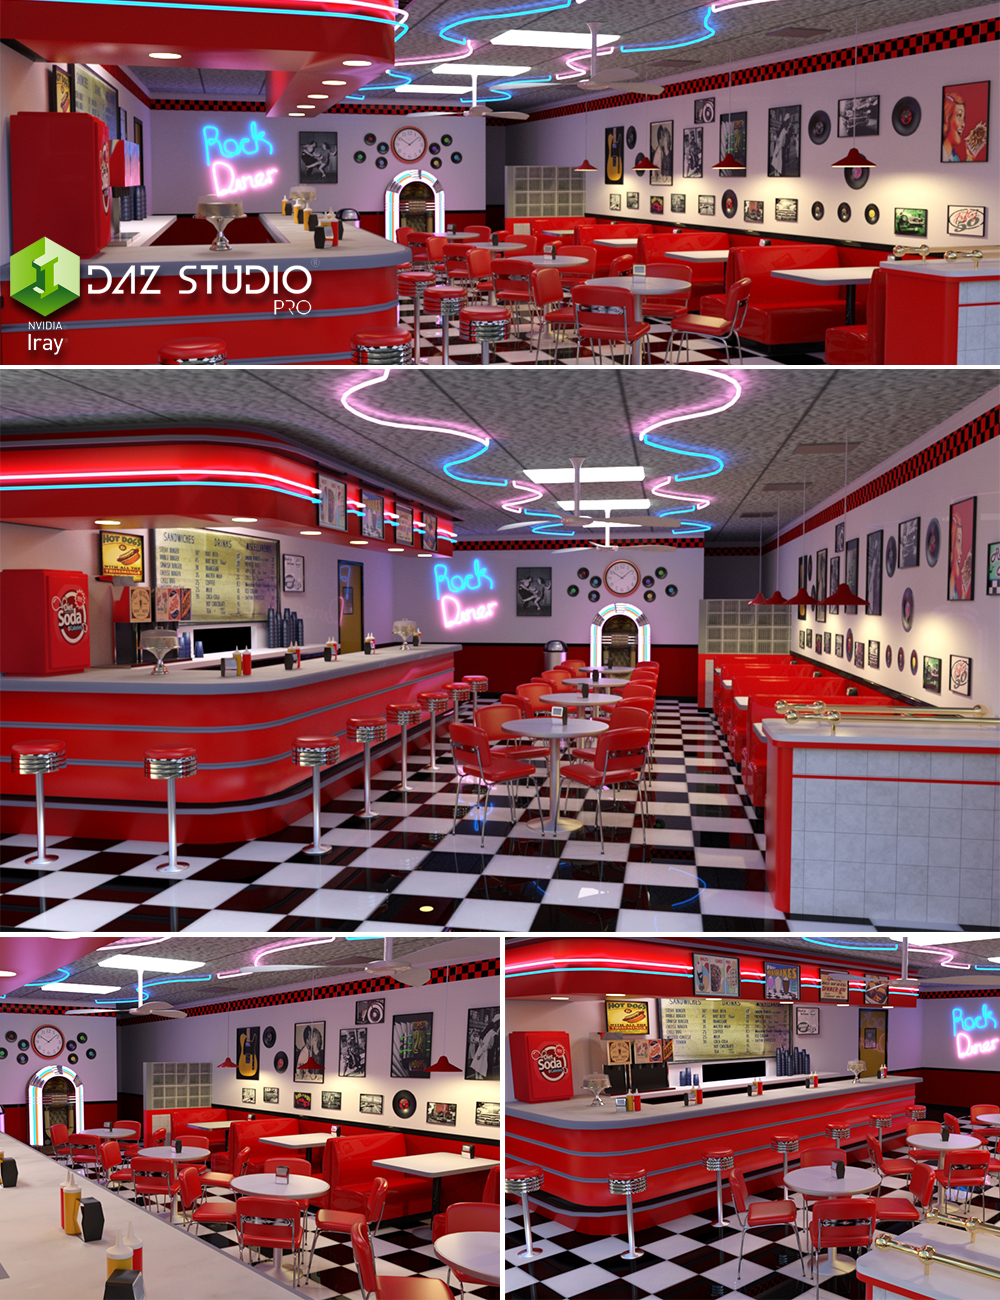 50 S Diner 3d Models And 3d Software By Daz 3d